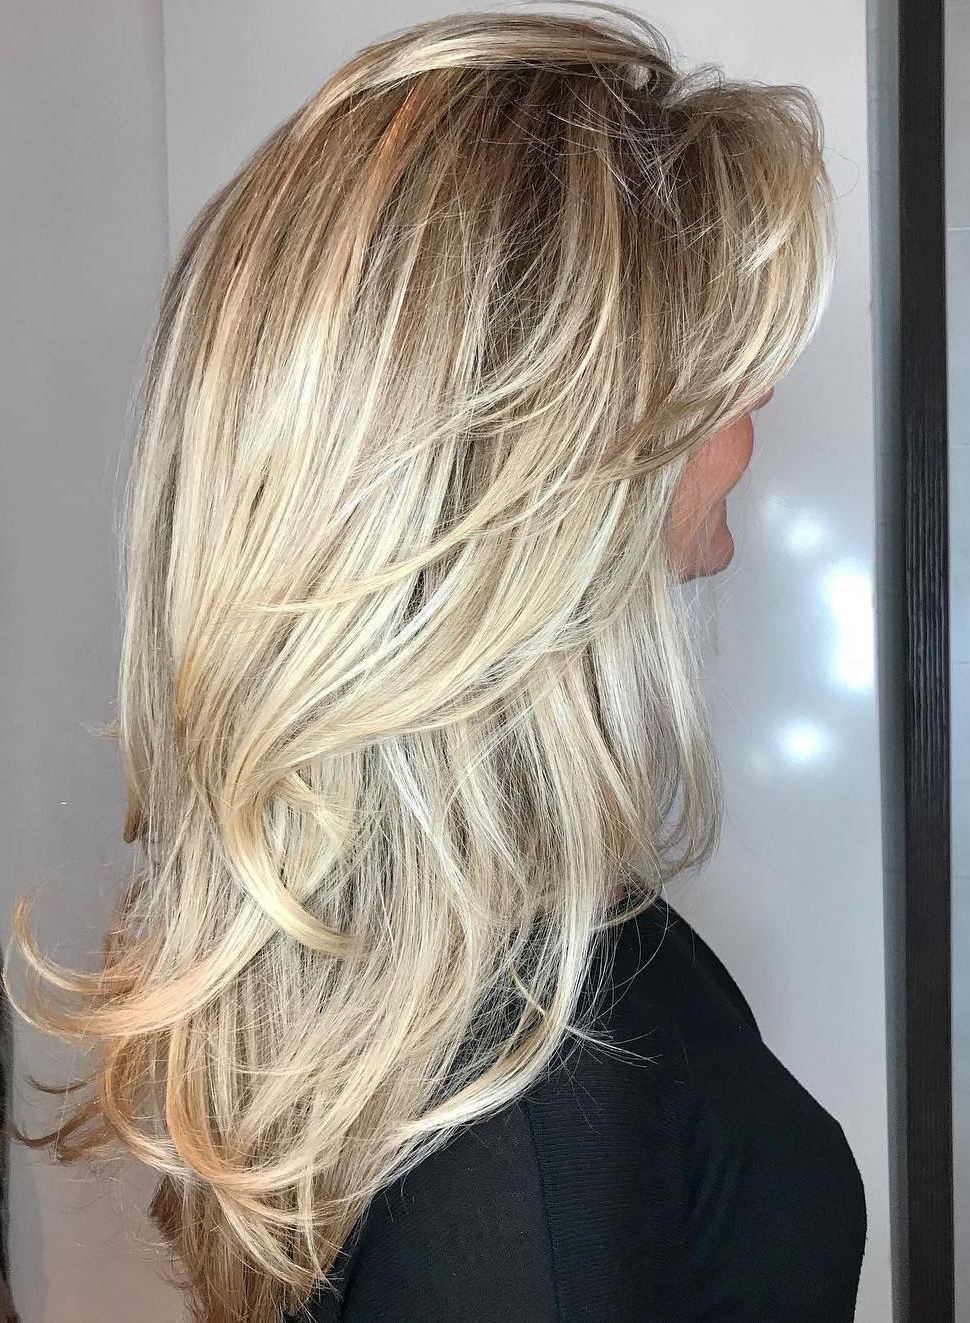 50 Cute Long Layered Haircuts With Bangs 2019 With Favorite Voluminous Layers Under Bangs Hairstyles (Gallery 1 of 20)